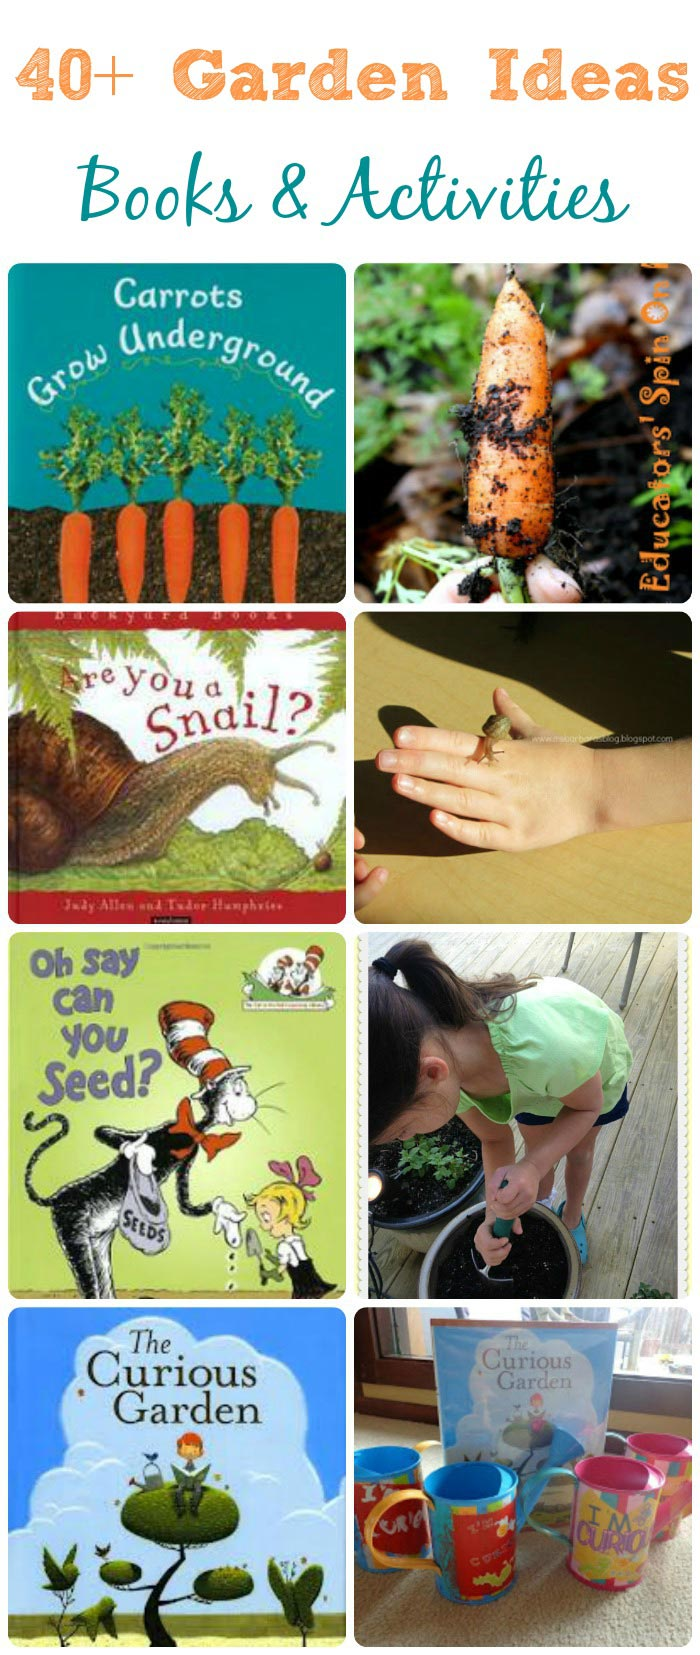 Garden books & activities for kids